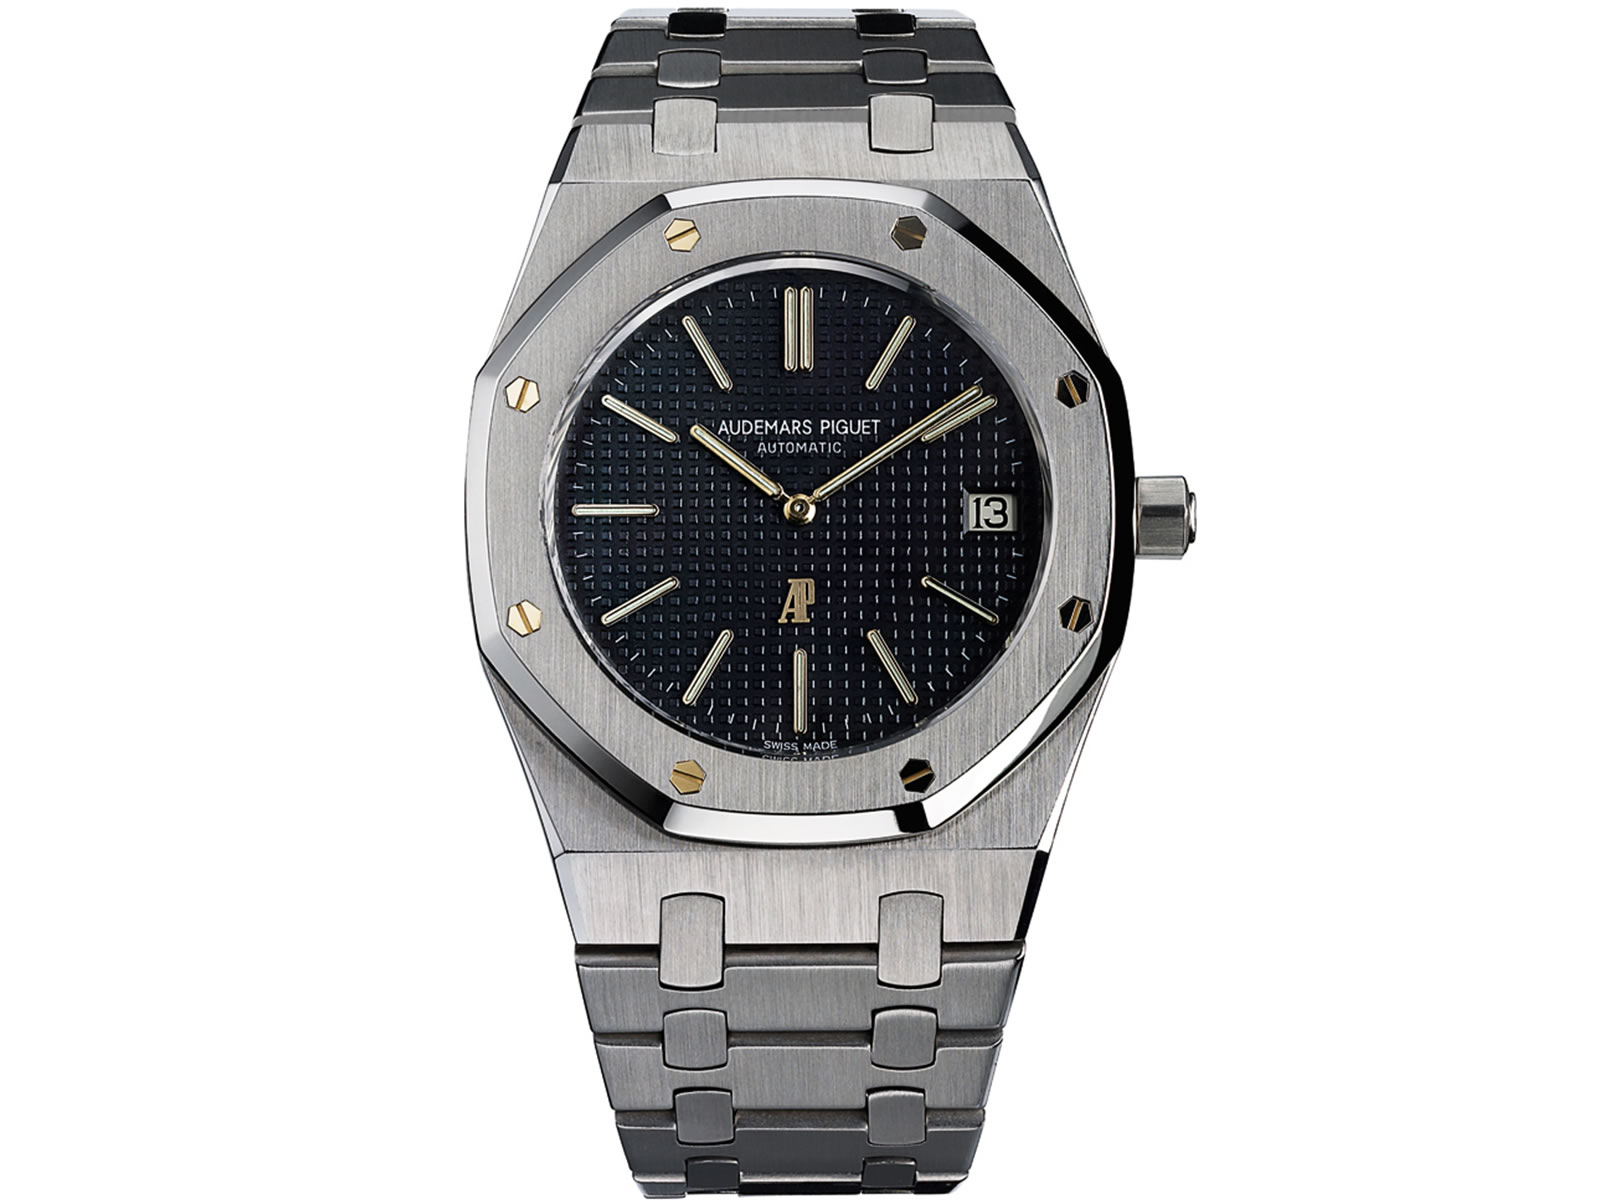 audemars-piguet-royal-oak-1972-.jpg